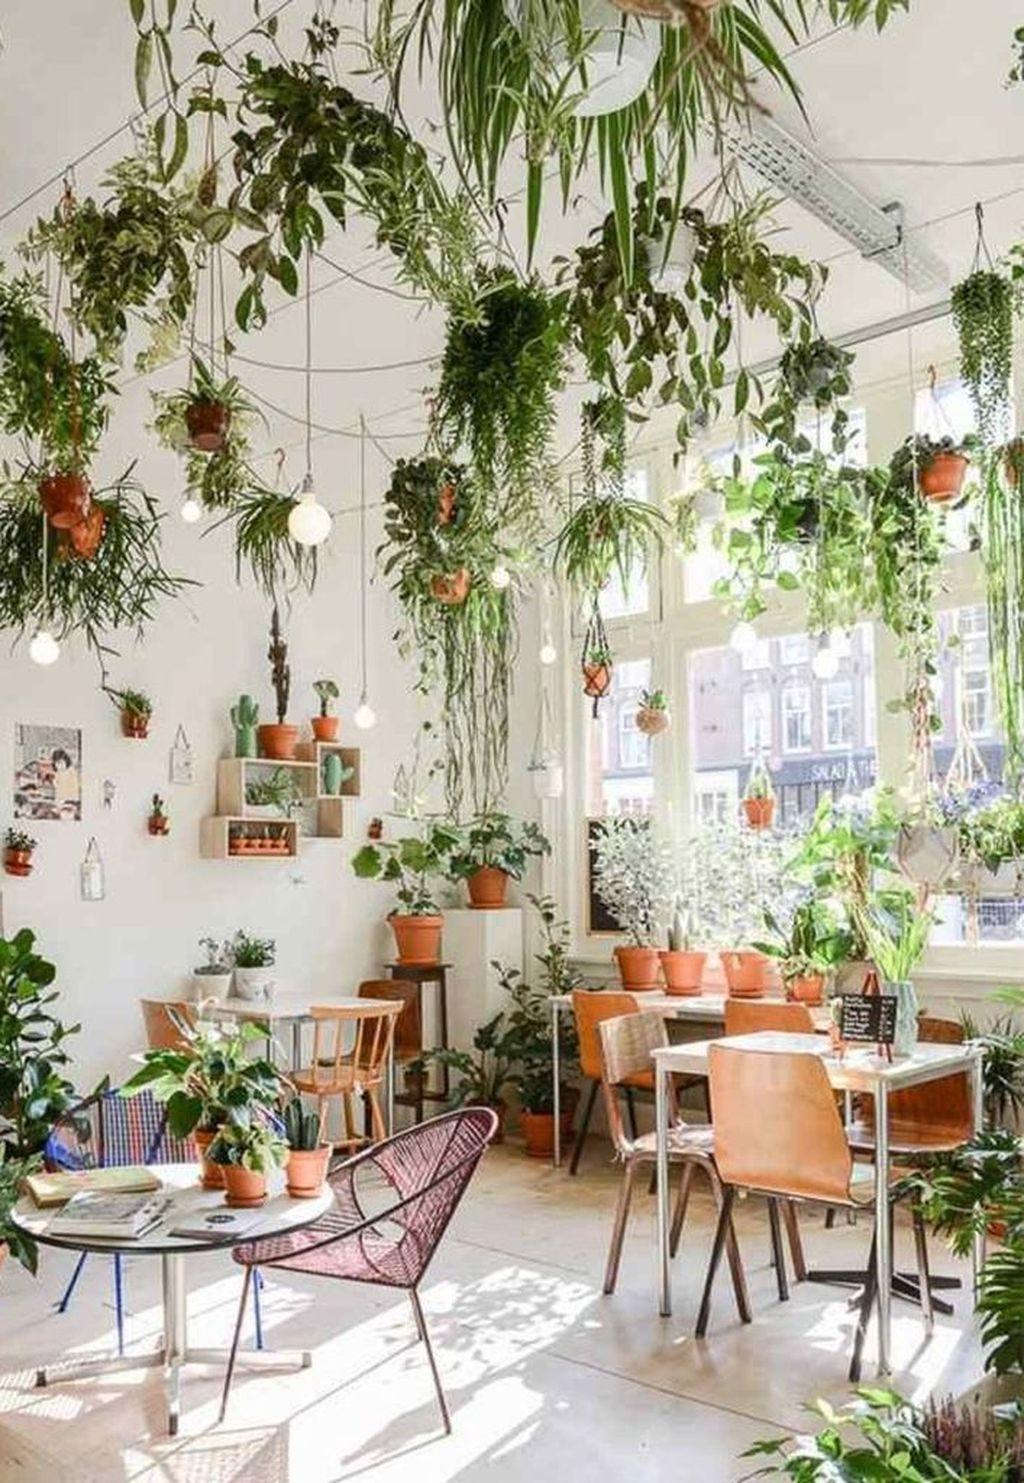 Favorite Home Patio Design Ideas With Best Hanging Plants 30